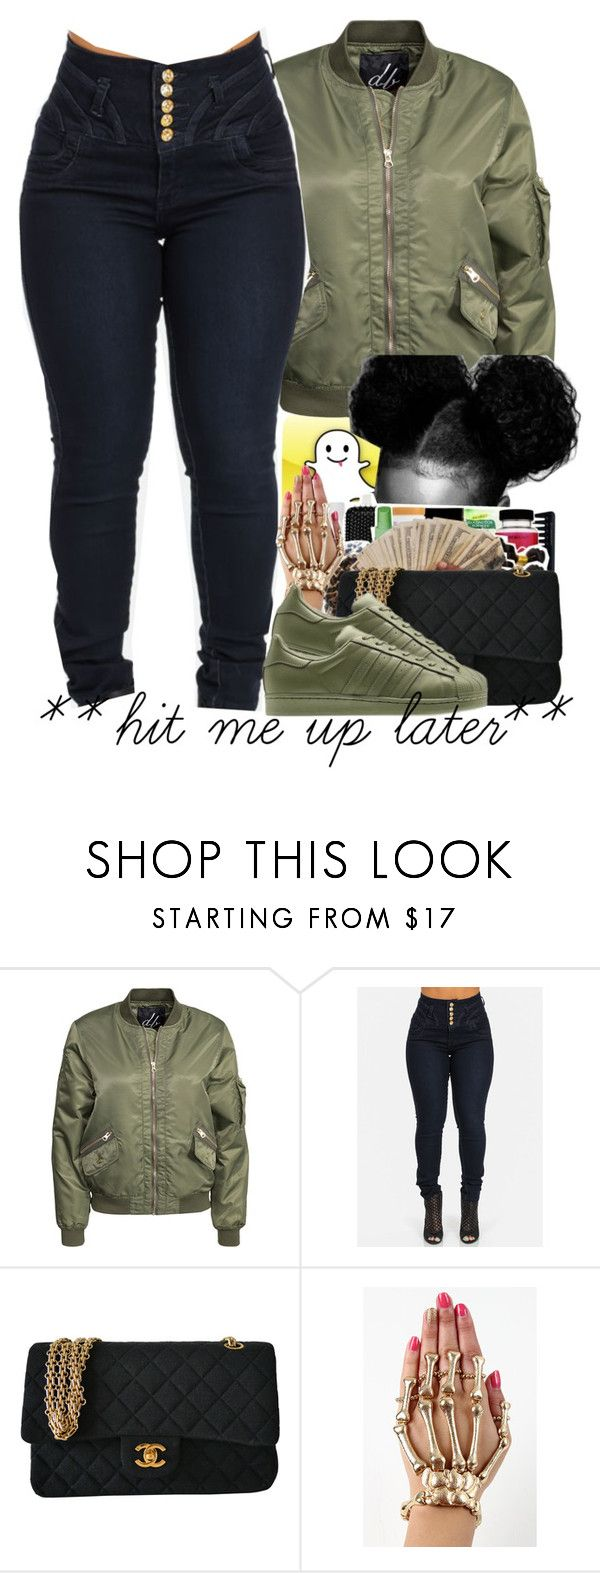 """""""DROP Y'ALL SNAPCHAT NAMES"""" by independentbxtchesonly ❤ liked on Polyvore featuring D. Brand, Chanel, adidas Originals, women's clothing, women's fashion, women, female, woman, misses and juniors"""